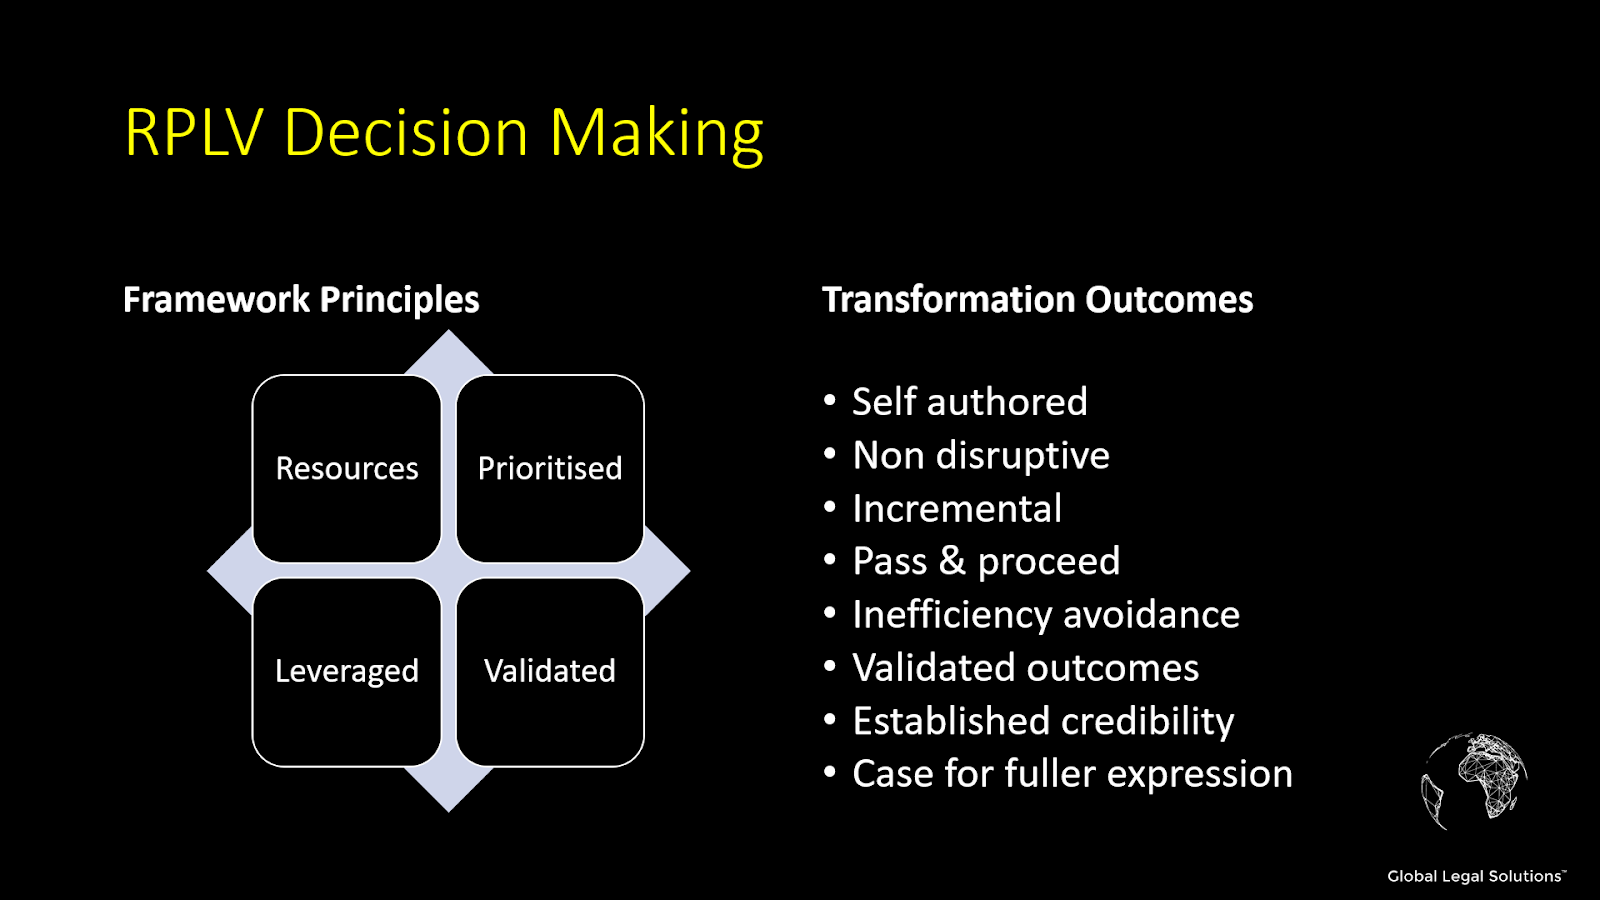 RPLV Decision making framework explained